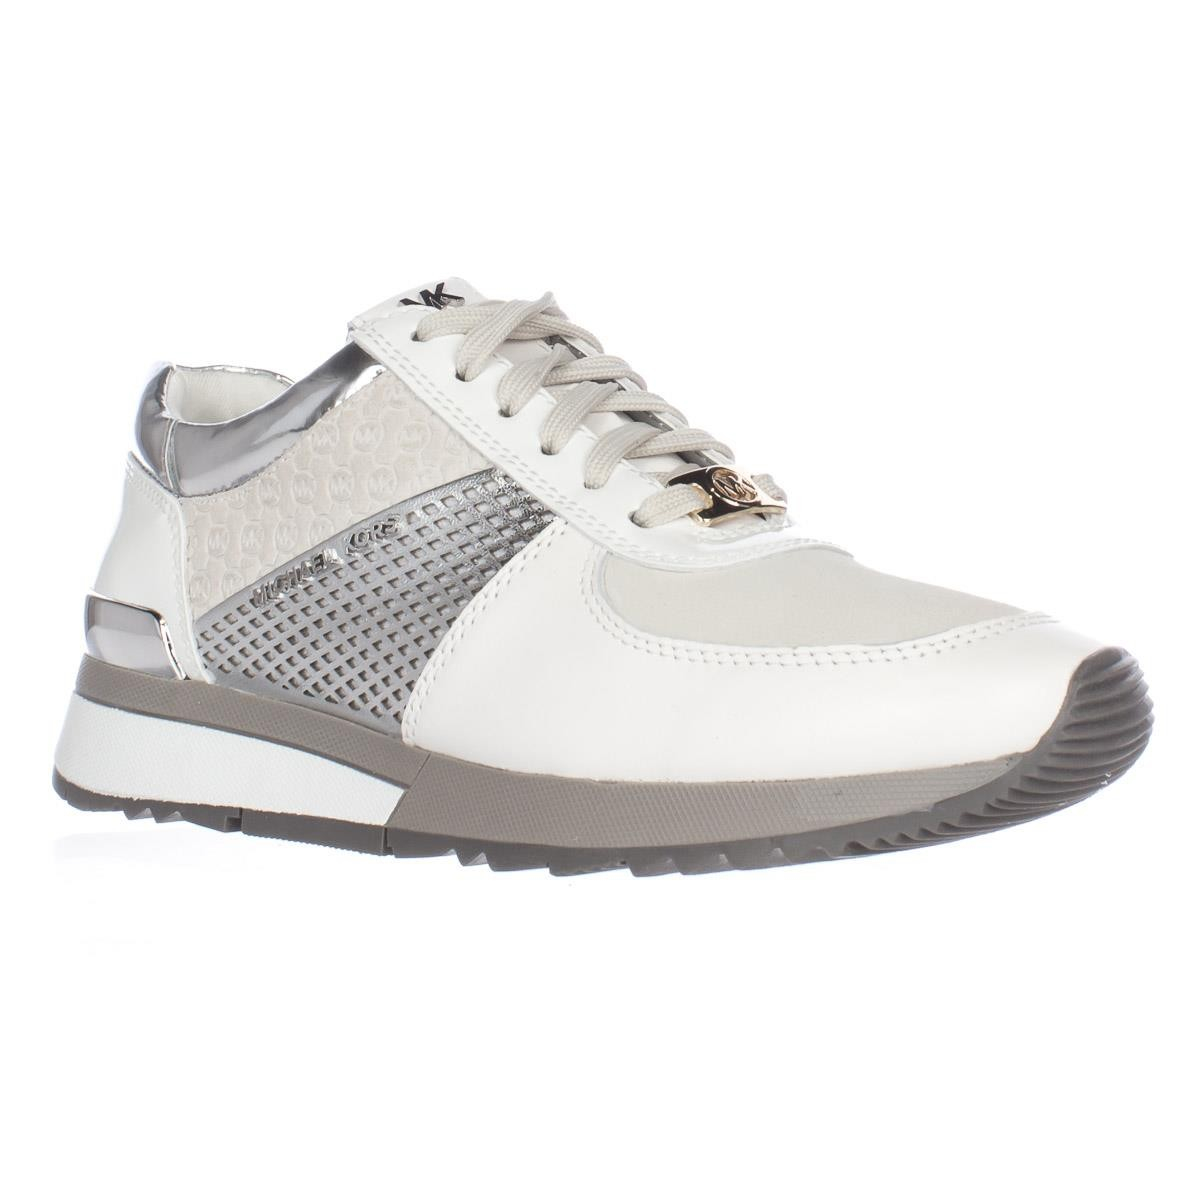 Michael Kors Leather Michael Allie Trainer Sneakers in